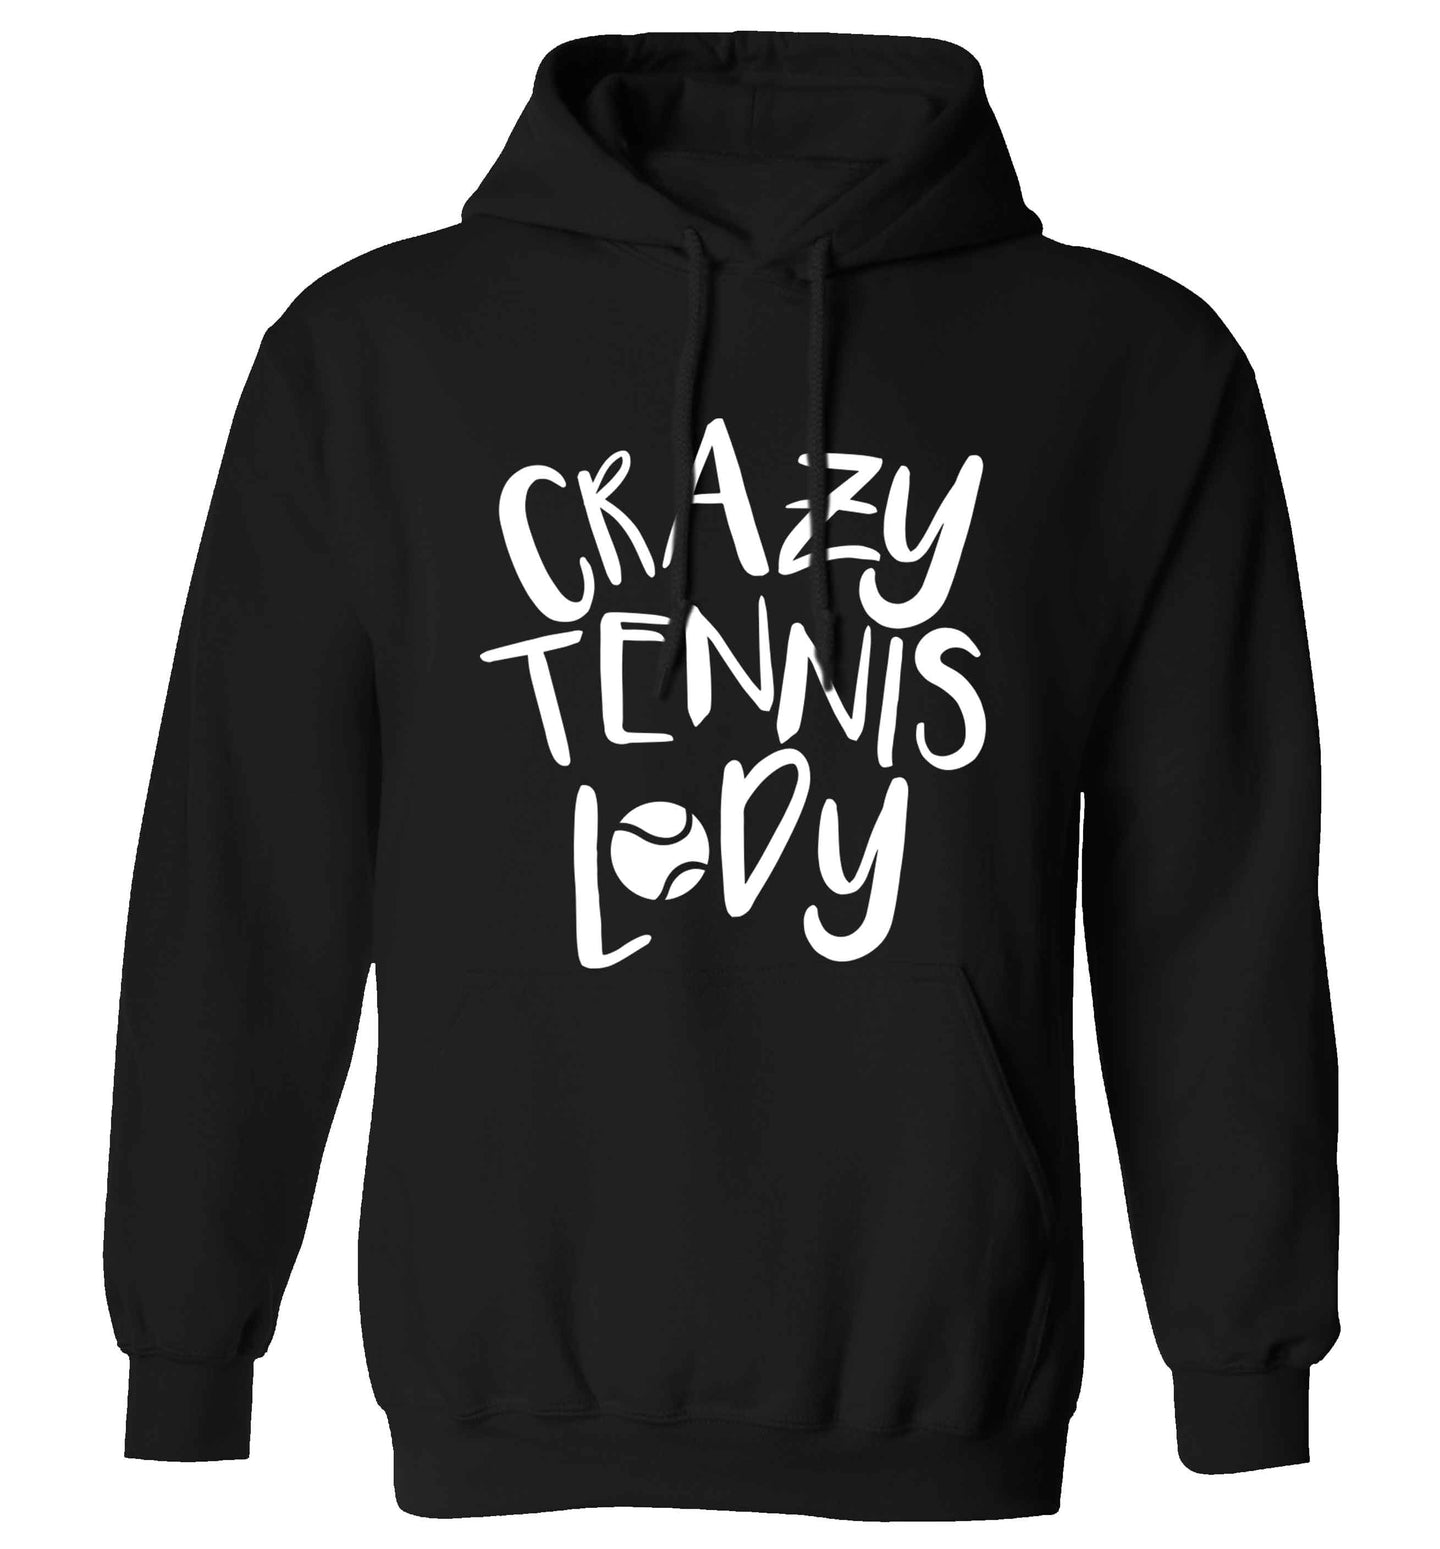 Crazy tennis lady adults unisex black hoodie 2XL